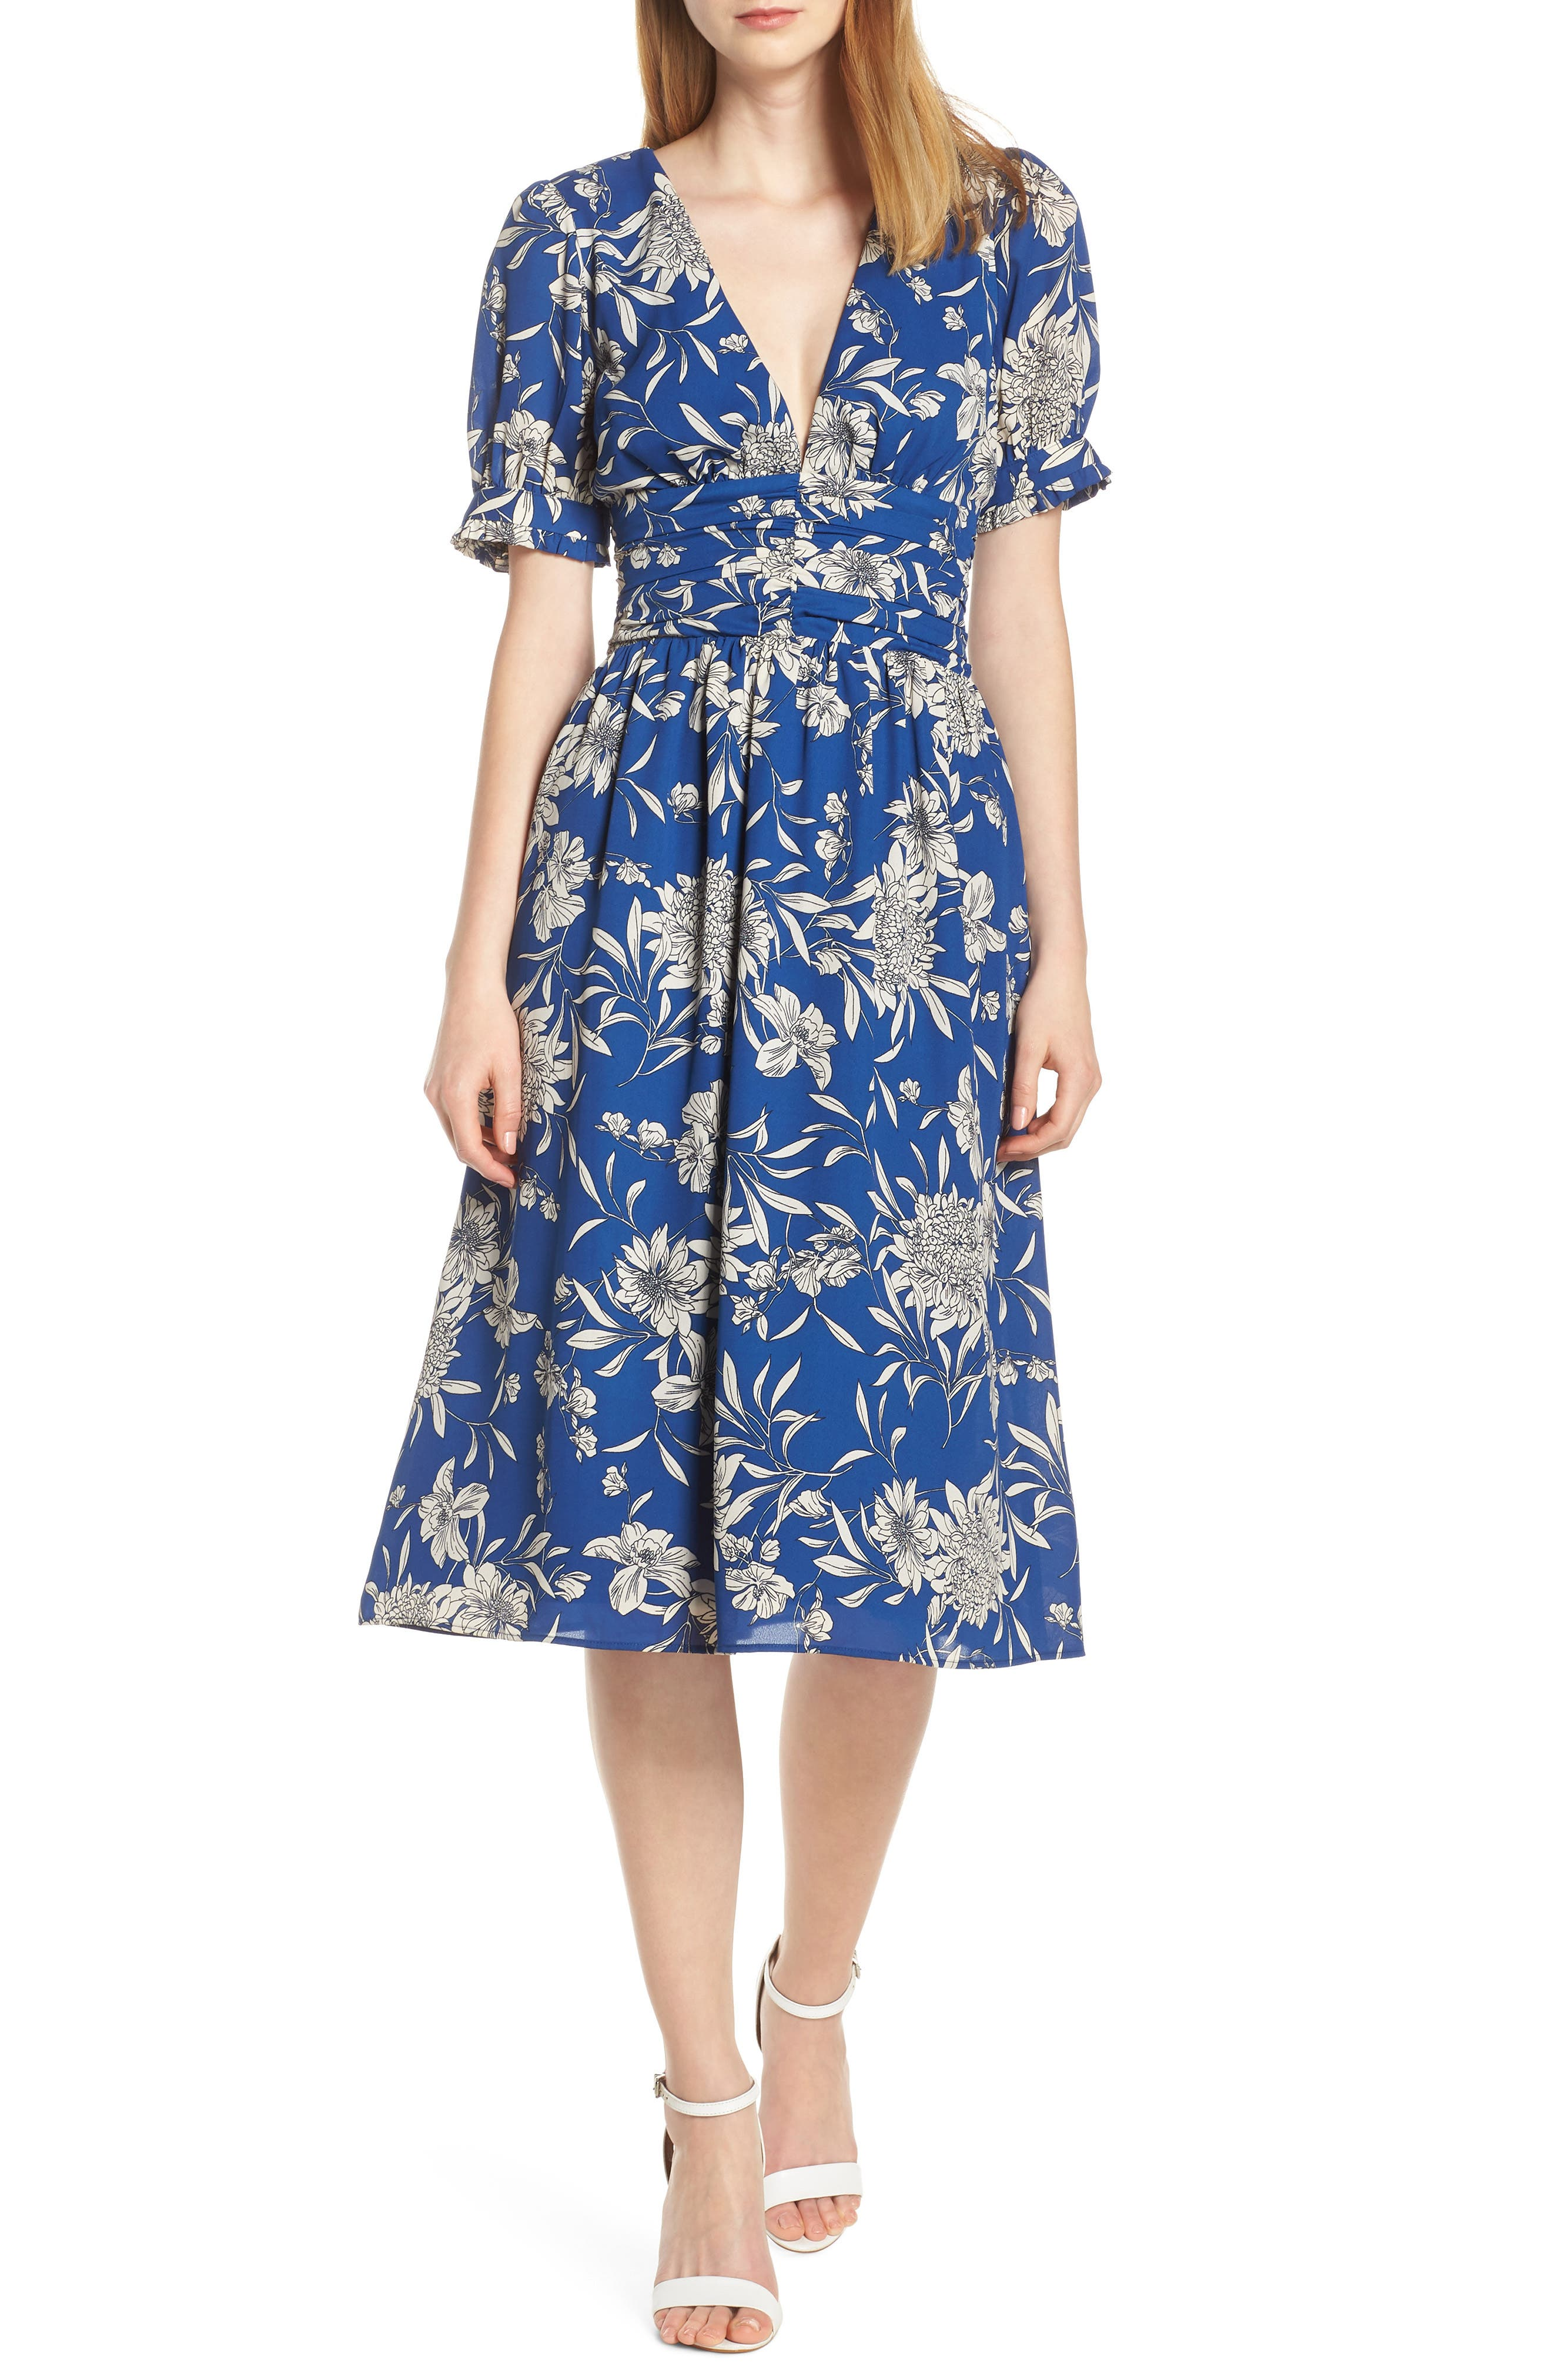 19 COOPER Shirred Waist Midi Dress, Main, color, BLUE/ WHITE